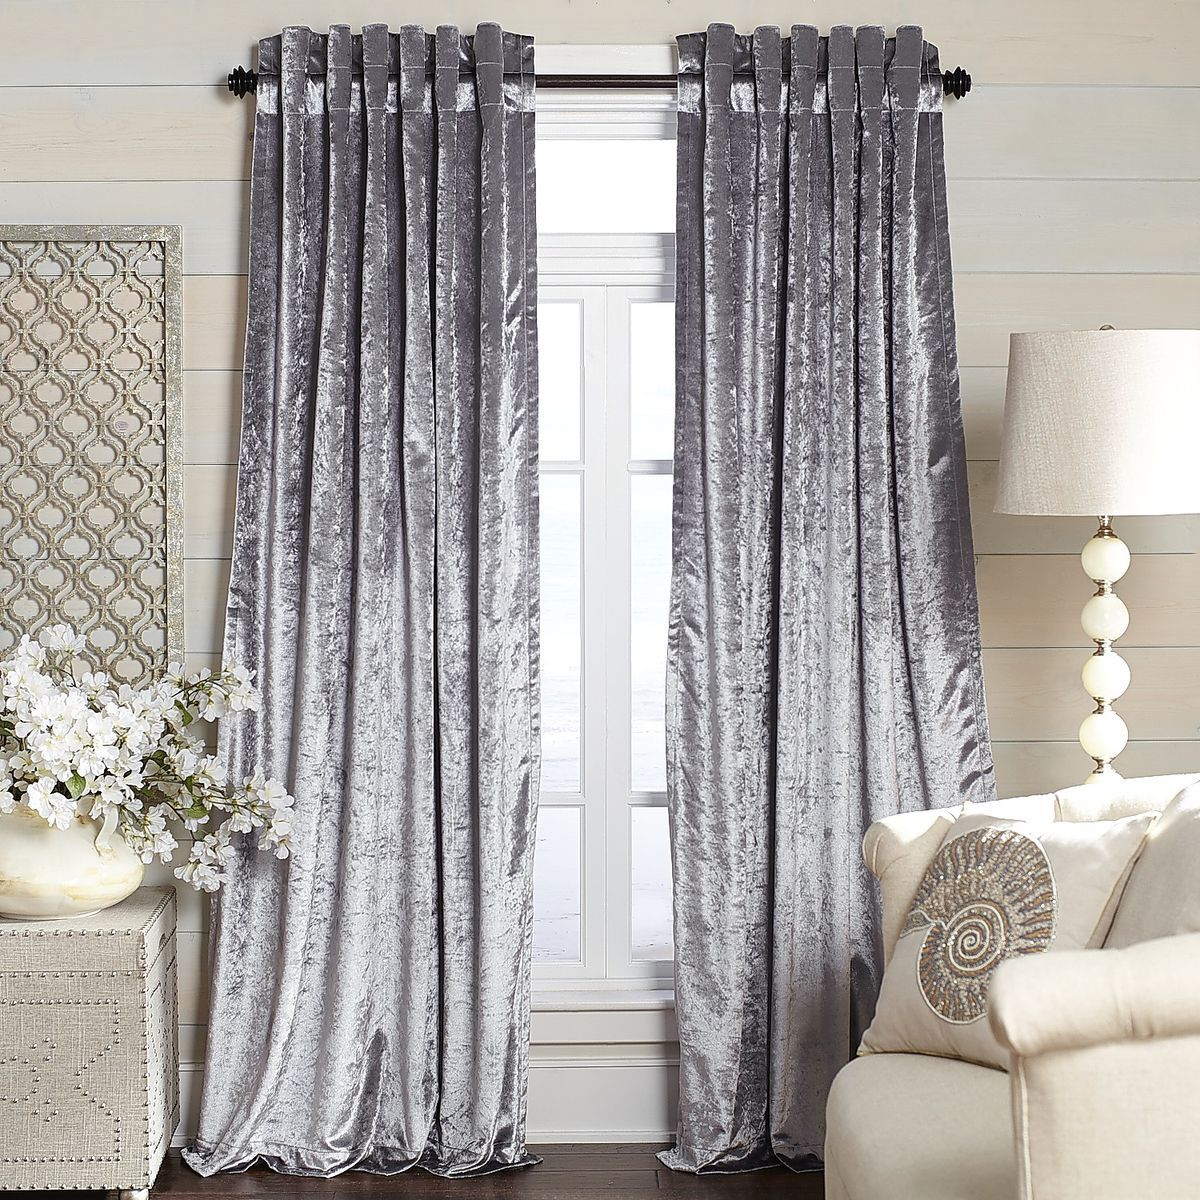 Metallic Velvet Curtain Silver Silver Curtains Velvet Curtains Curtains